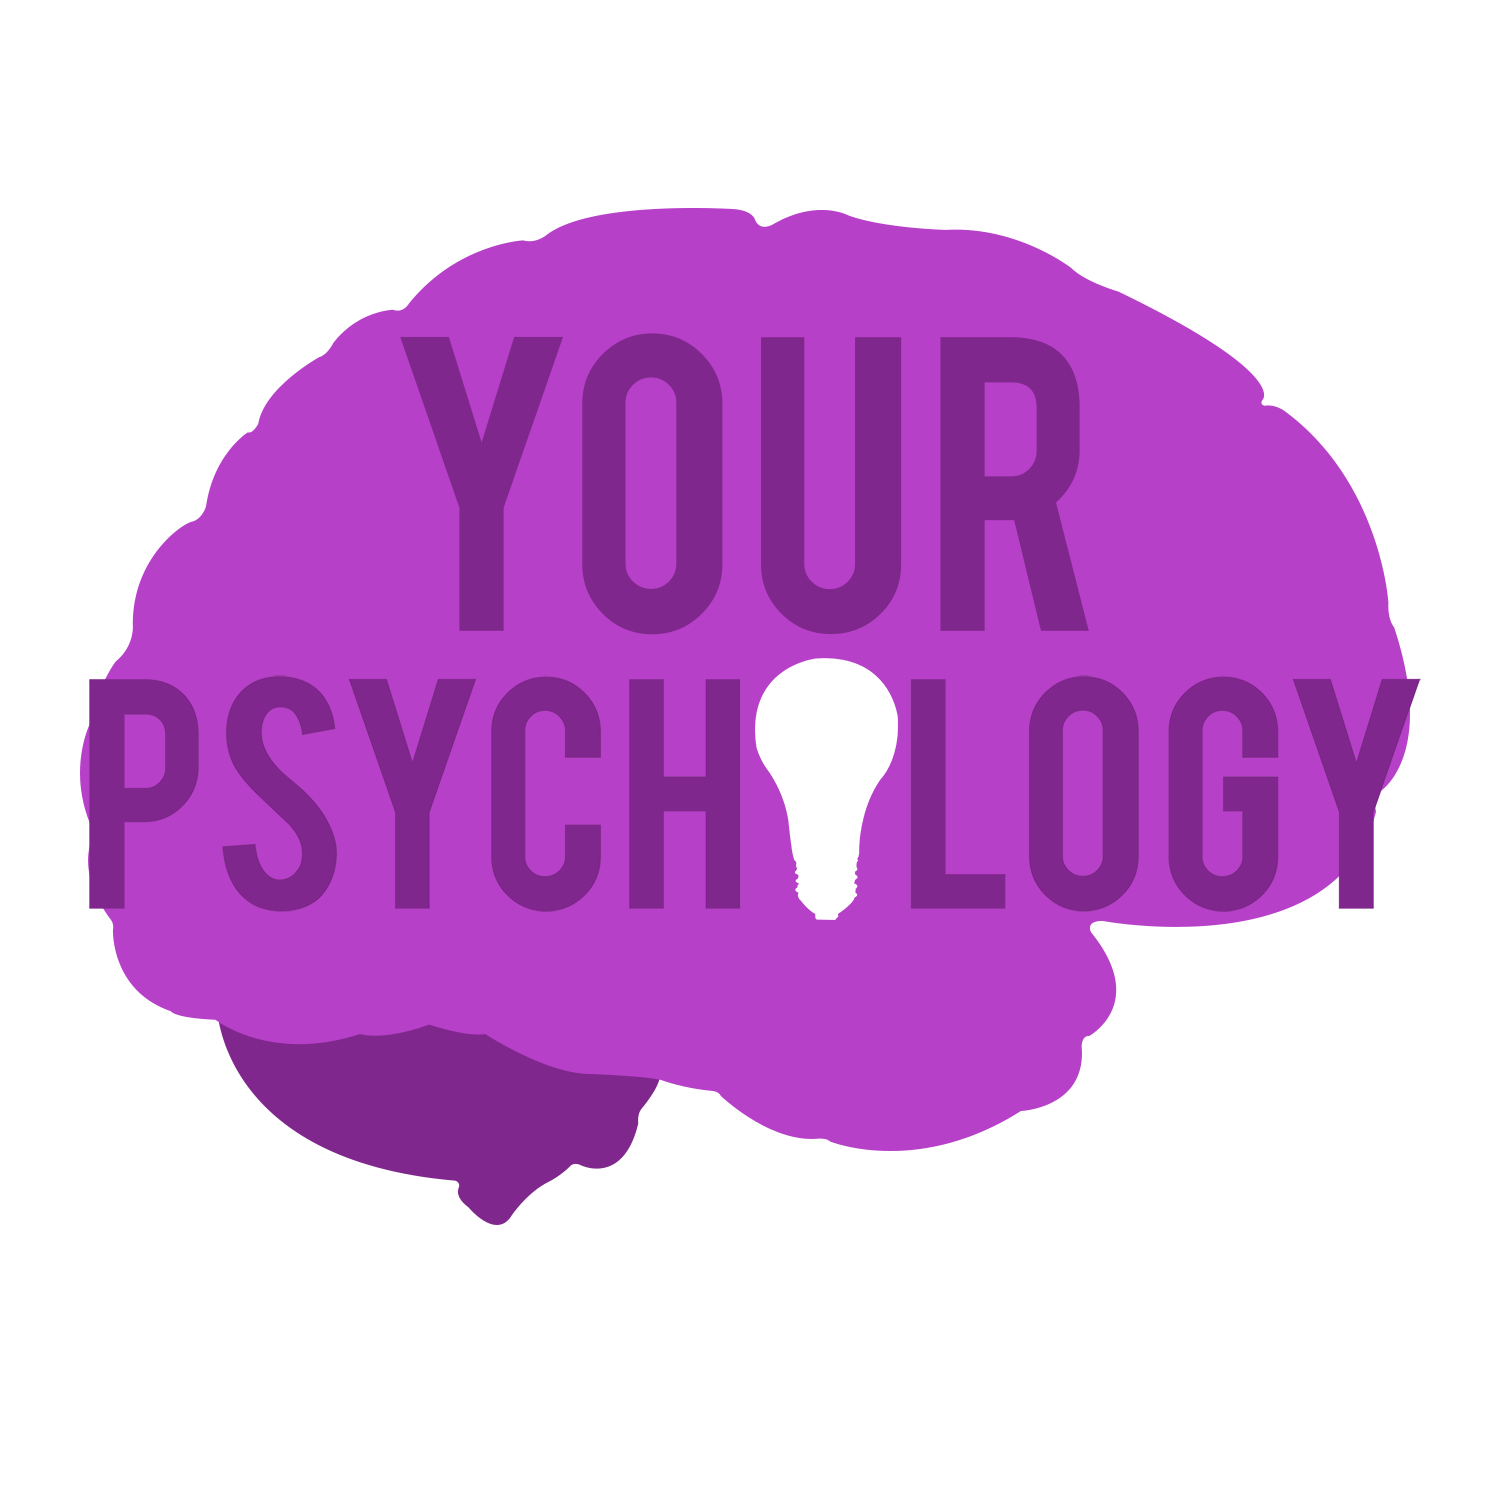 child psychology, educational psychology, developmental psychology